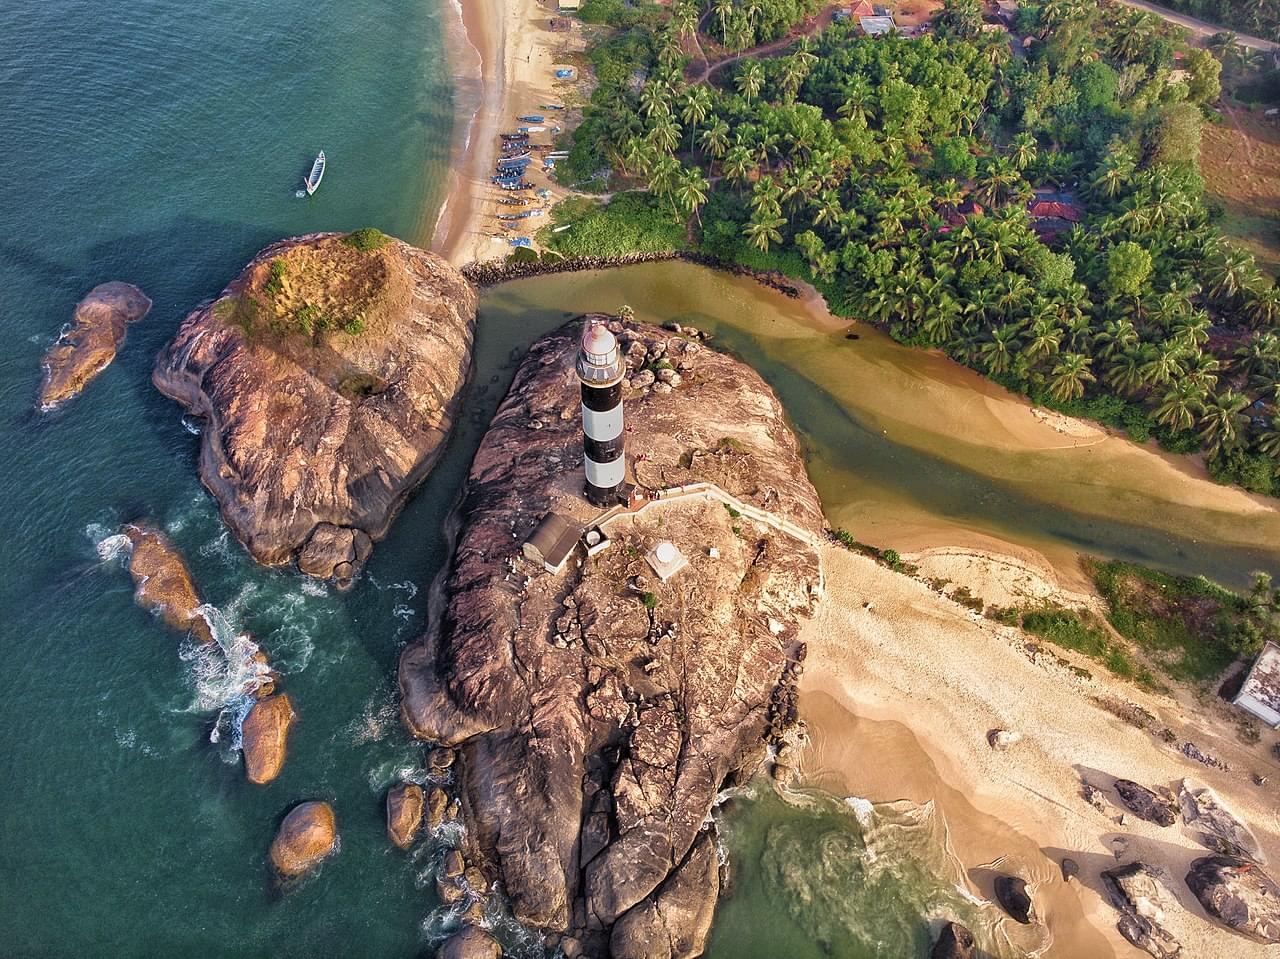 4-Night-5-Days-Chikmagalur-and-Udupi-Tour-Package-JustWravel-1597394112-4.jpg